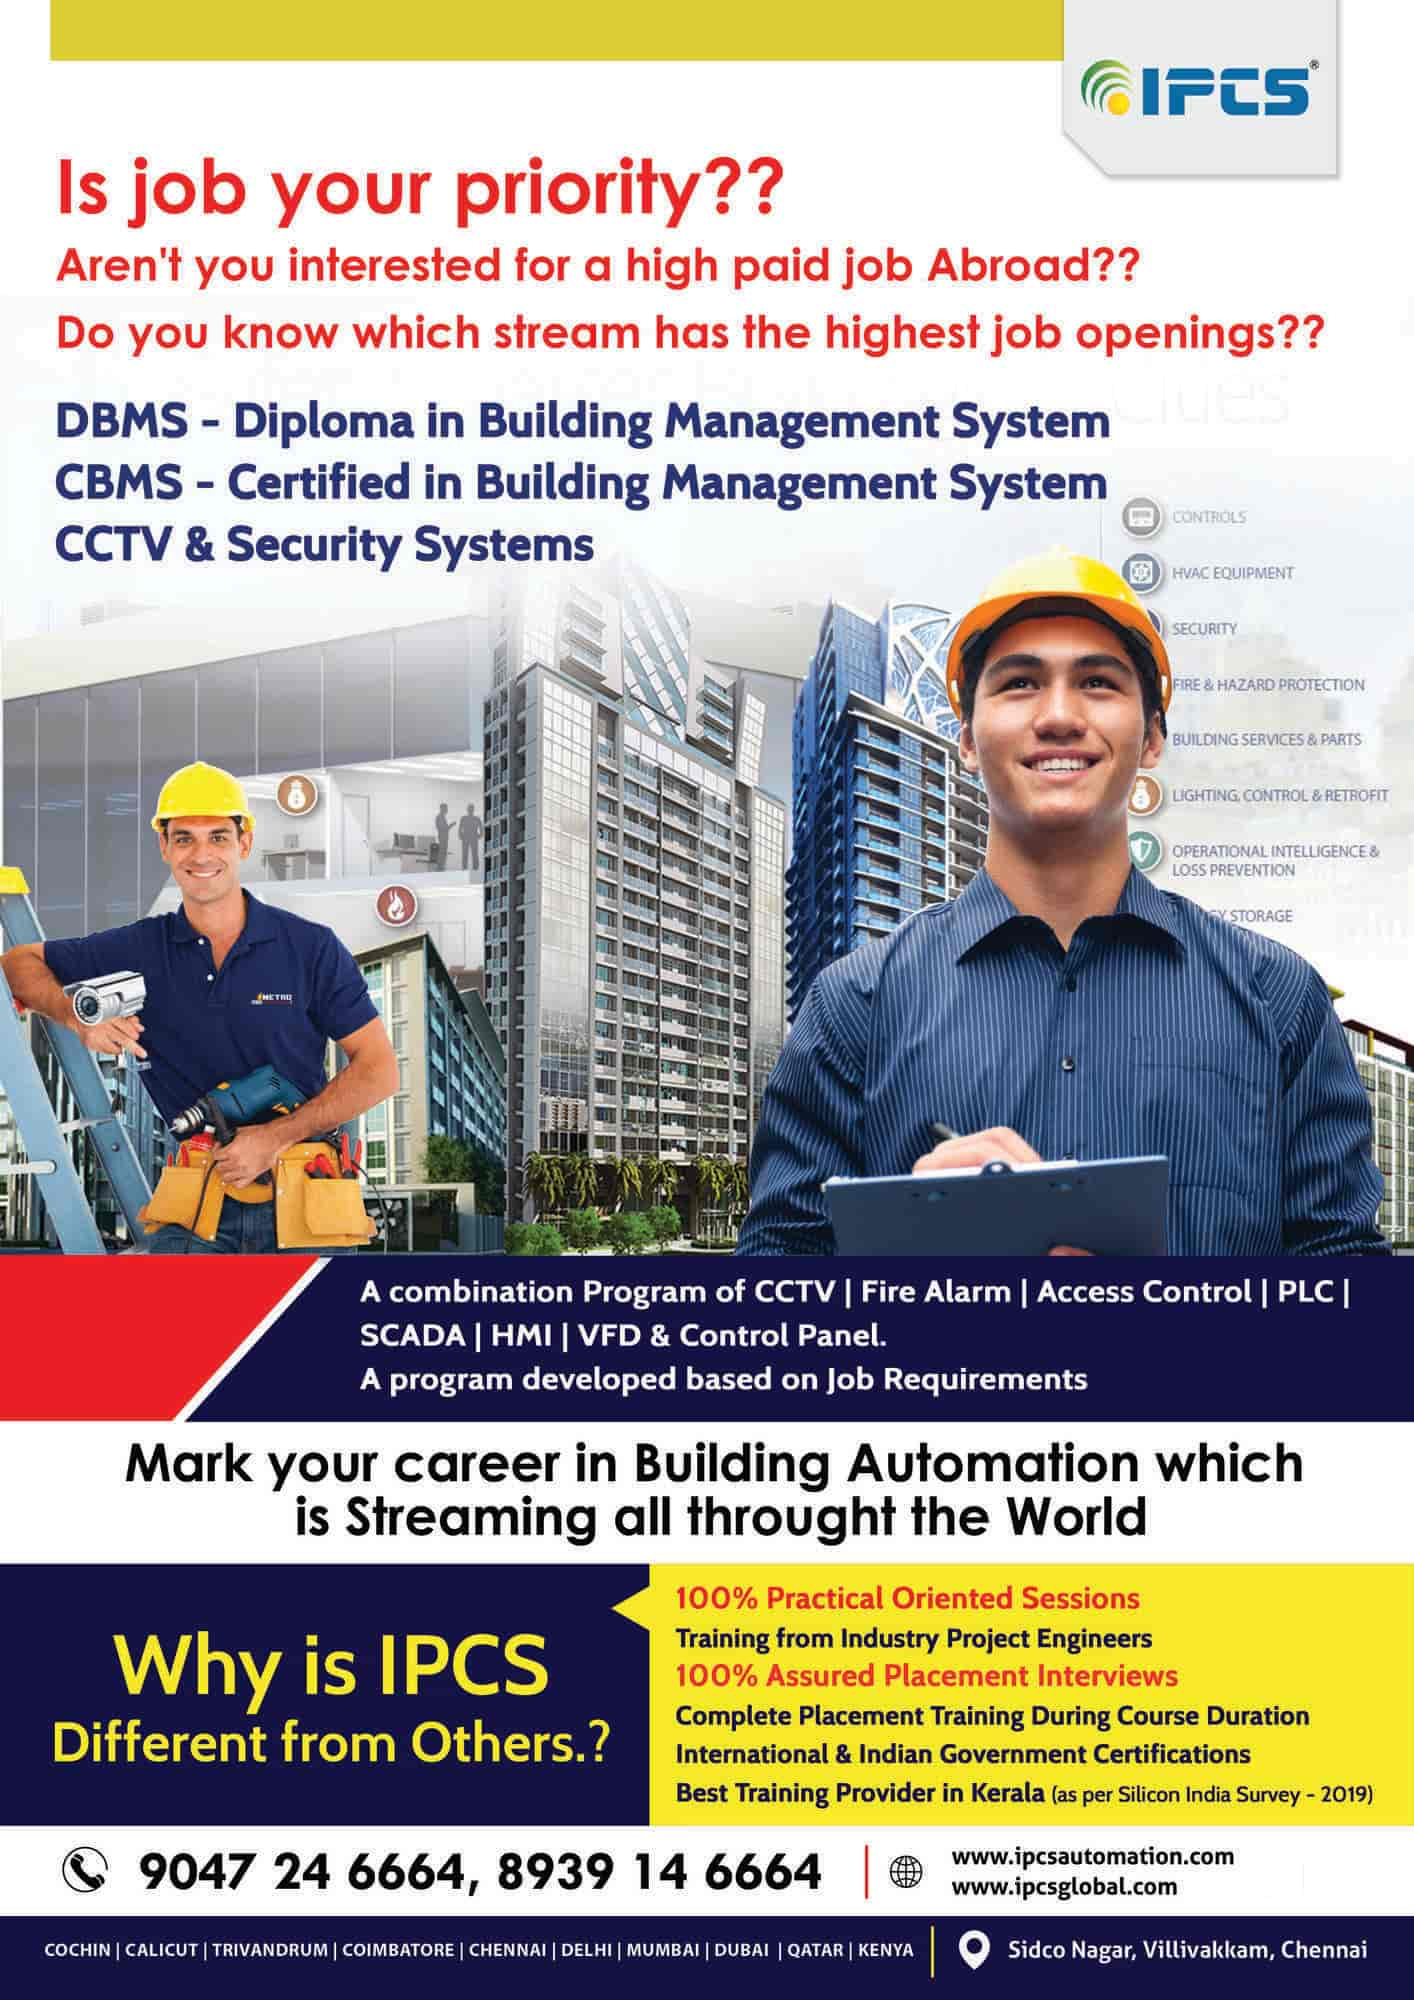 Ipcs Automation, Villivakkam - PLC Training Institutes in Chennai